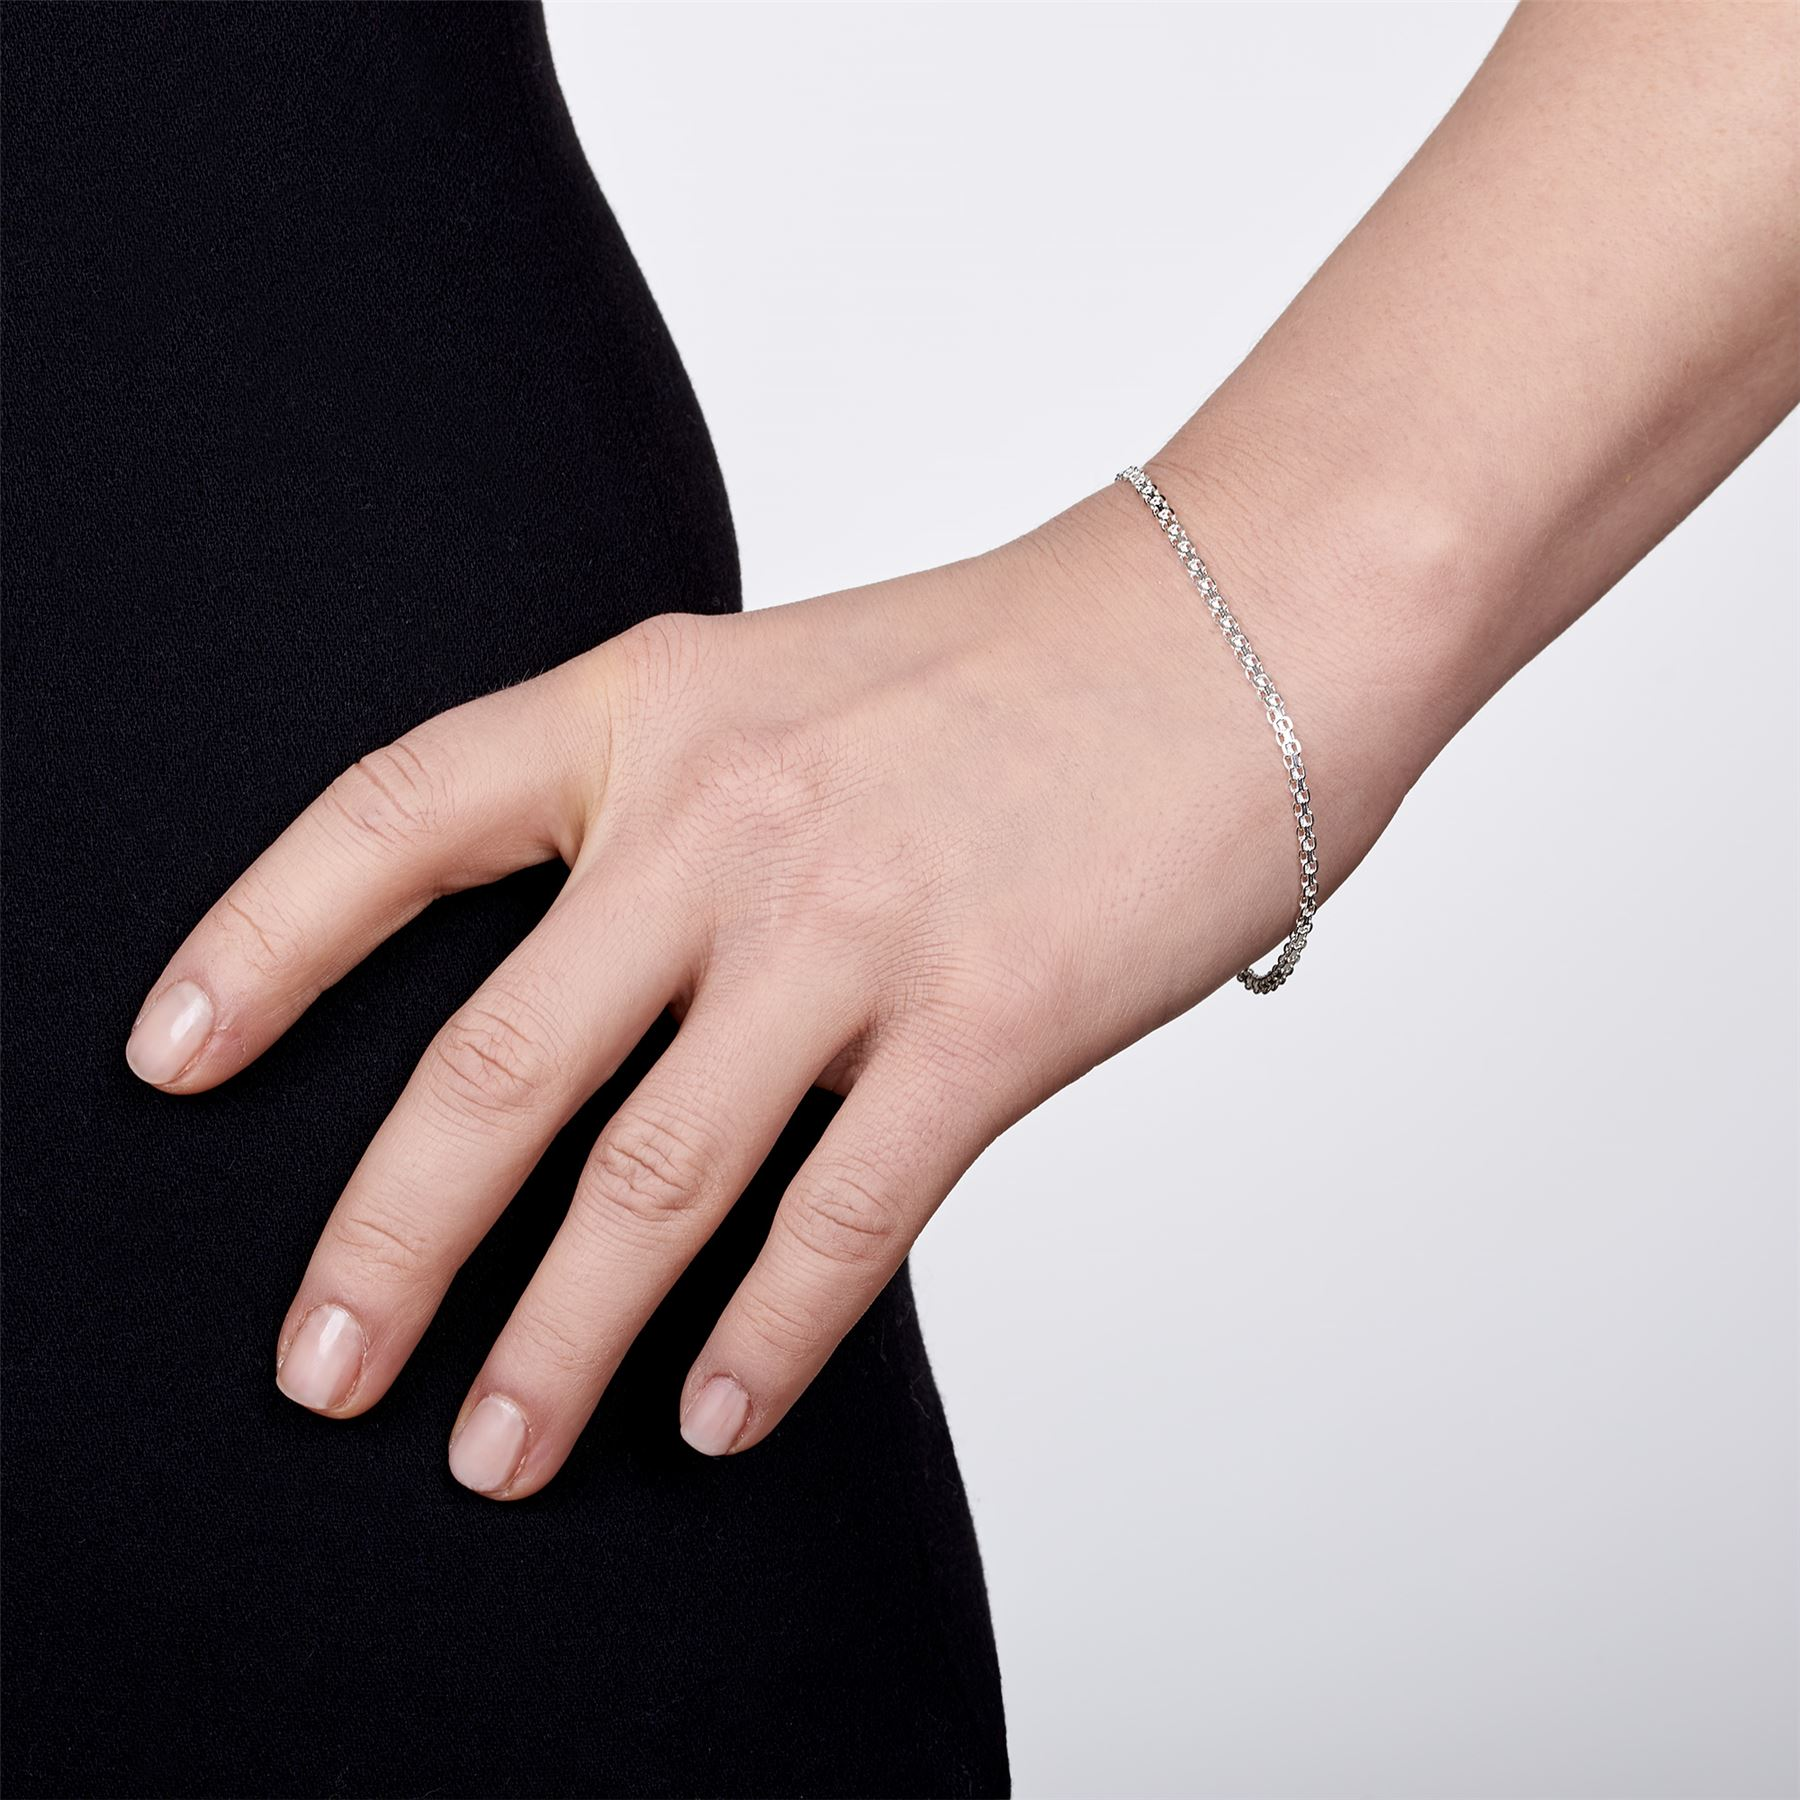 Amberta-Jewelry-Genuine-925-Sterling-Silver-Bracelet-Bangle-Chain-Made-in-Italy thumbnail 61